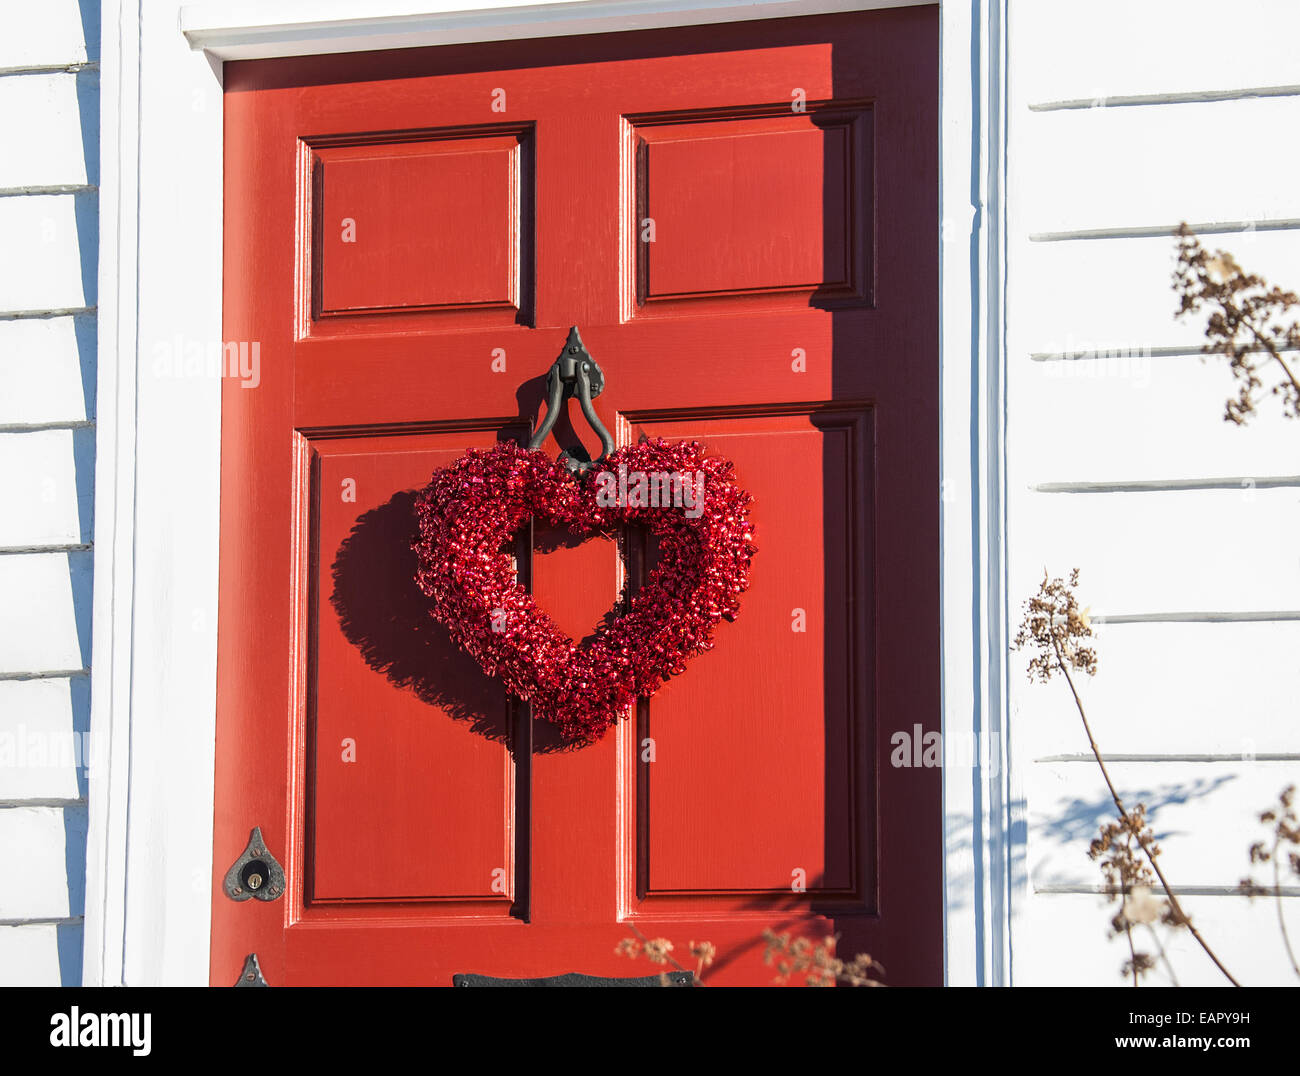 Heart wreath stock photos heart wreath stock images alamy red front door with a red heart wreath for saint valentines day mercer county rubansaba